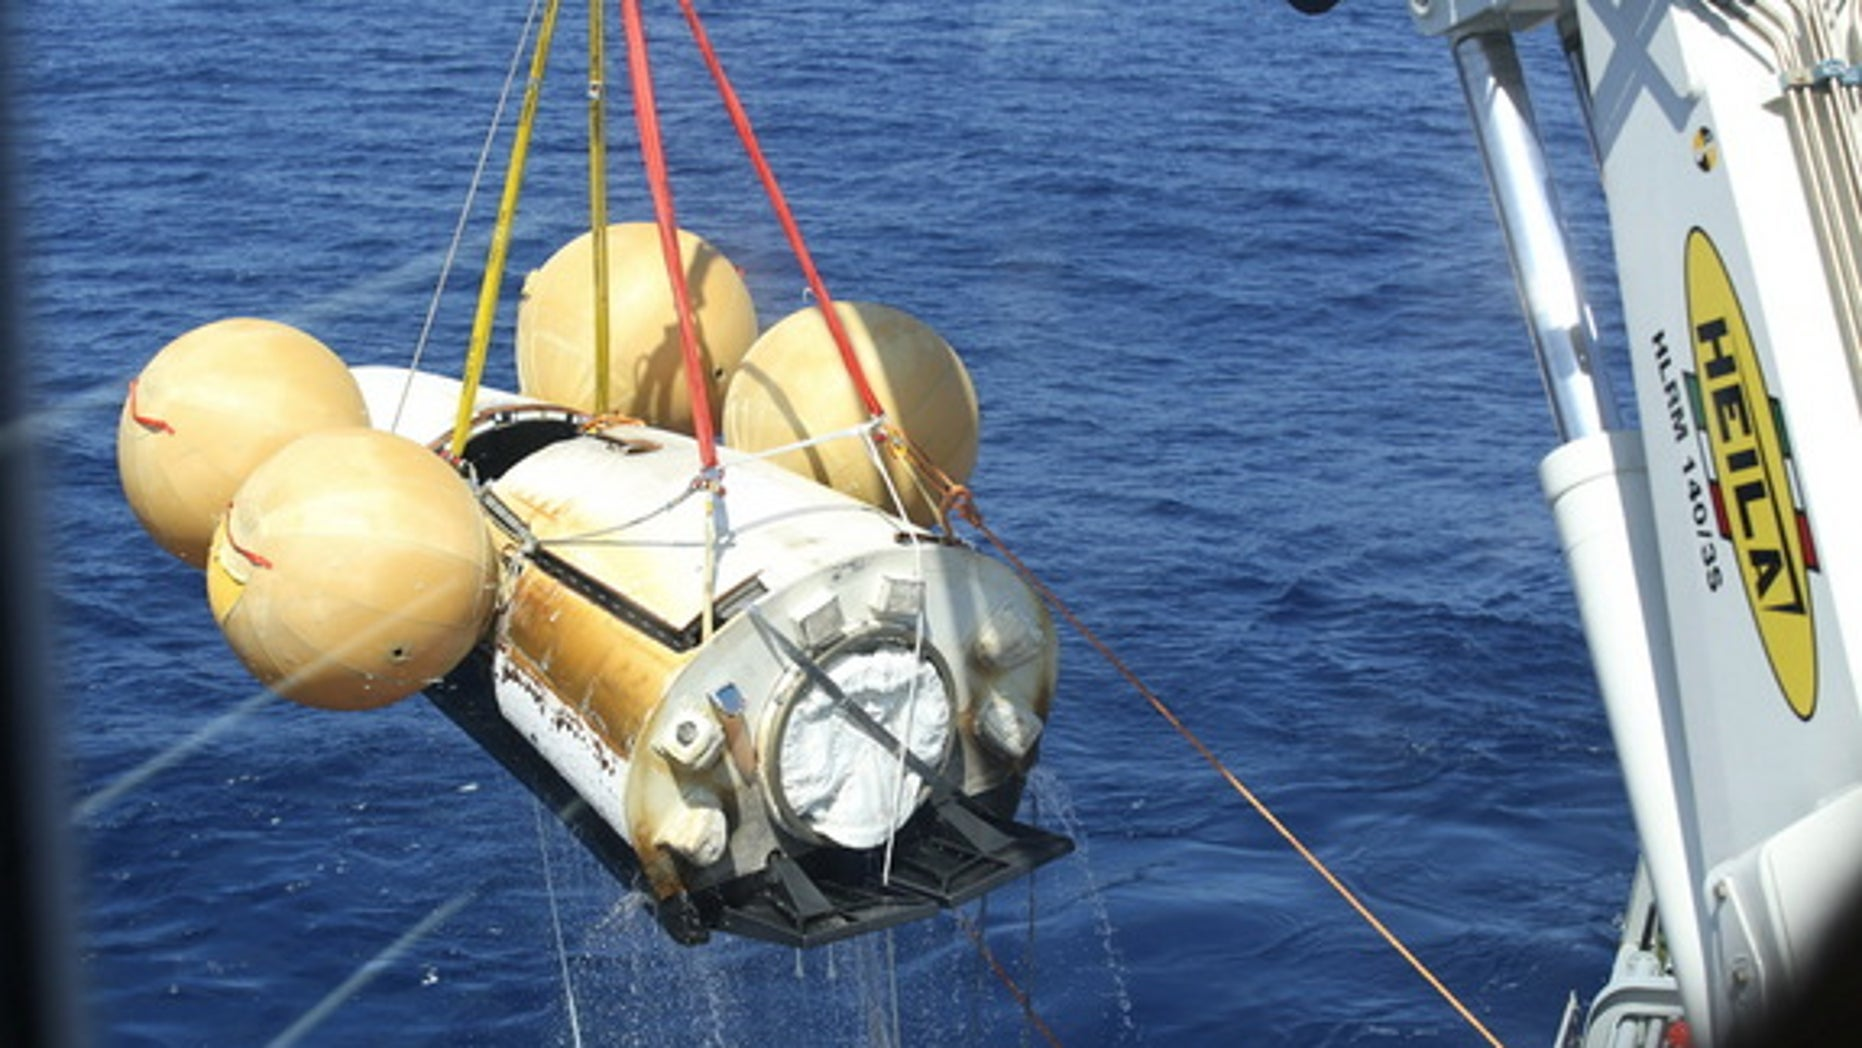 Europe's Intermediate eXperimental Vehicle robotic space plane is pulled out of the ocean after its first test flight on Feb. 11, 2015. European Space Agency officials are already planning the spacecraft's next test.